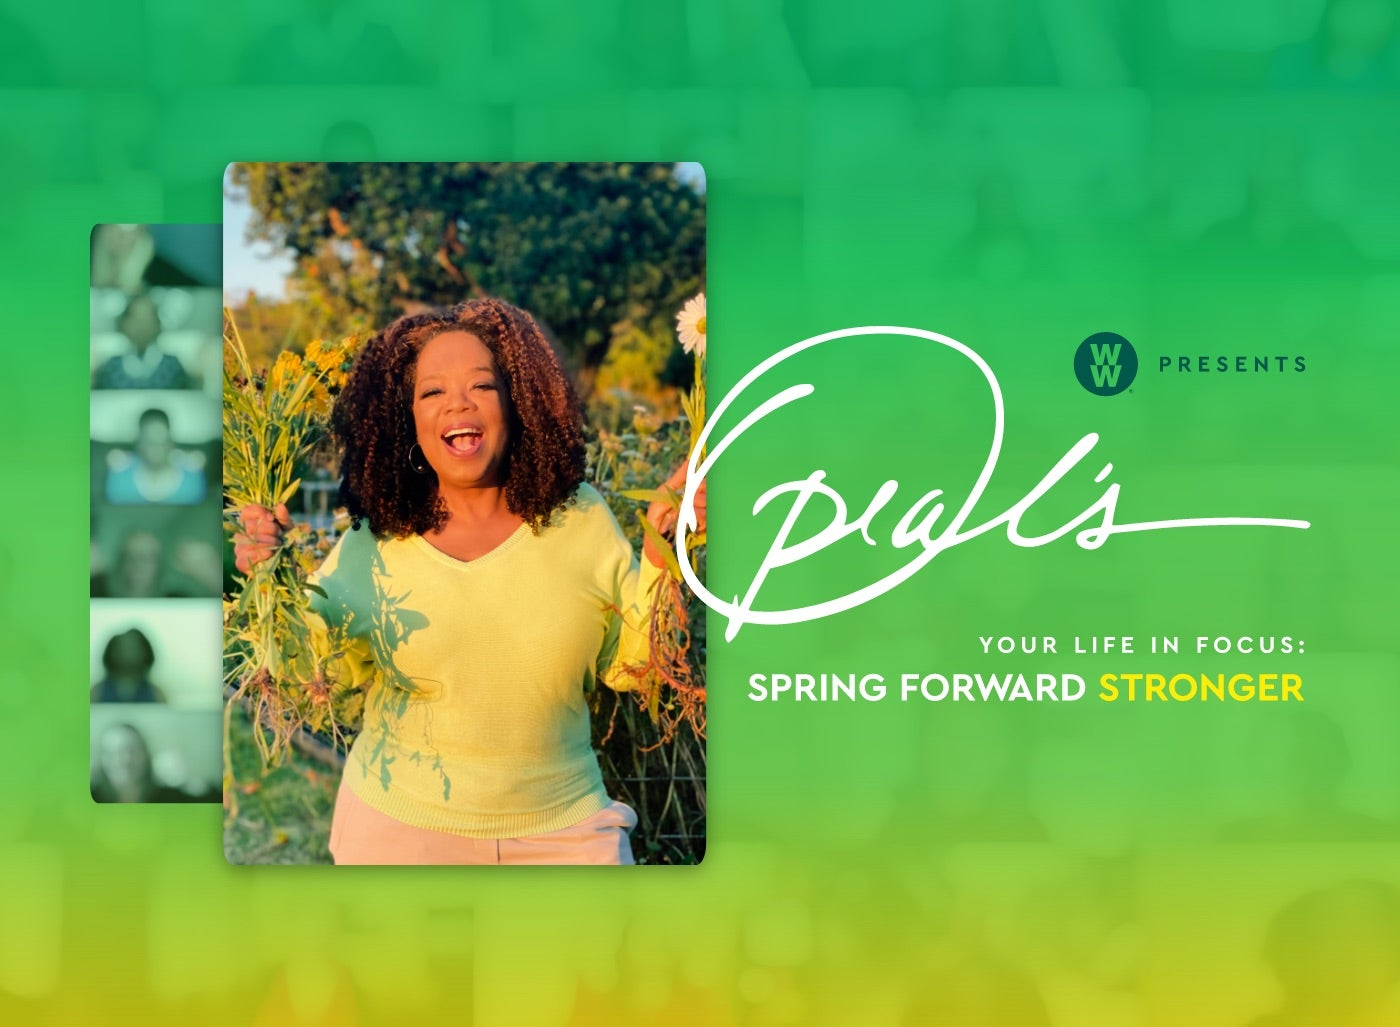 Oprah is pictured in a sunny field holding up flowers with both hands. She's appearing inside of a digital video call; many faces can be seen in the background.